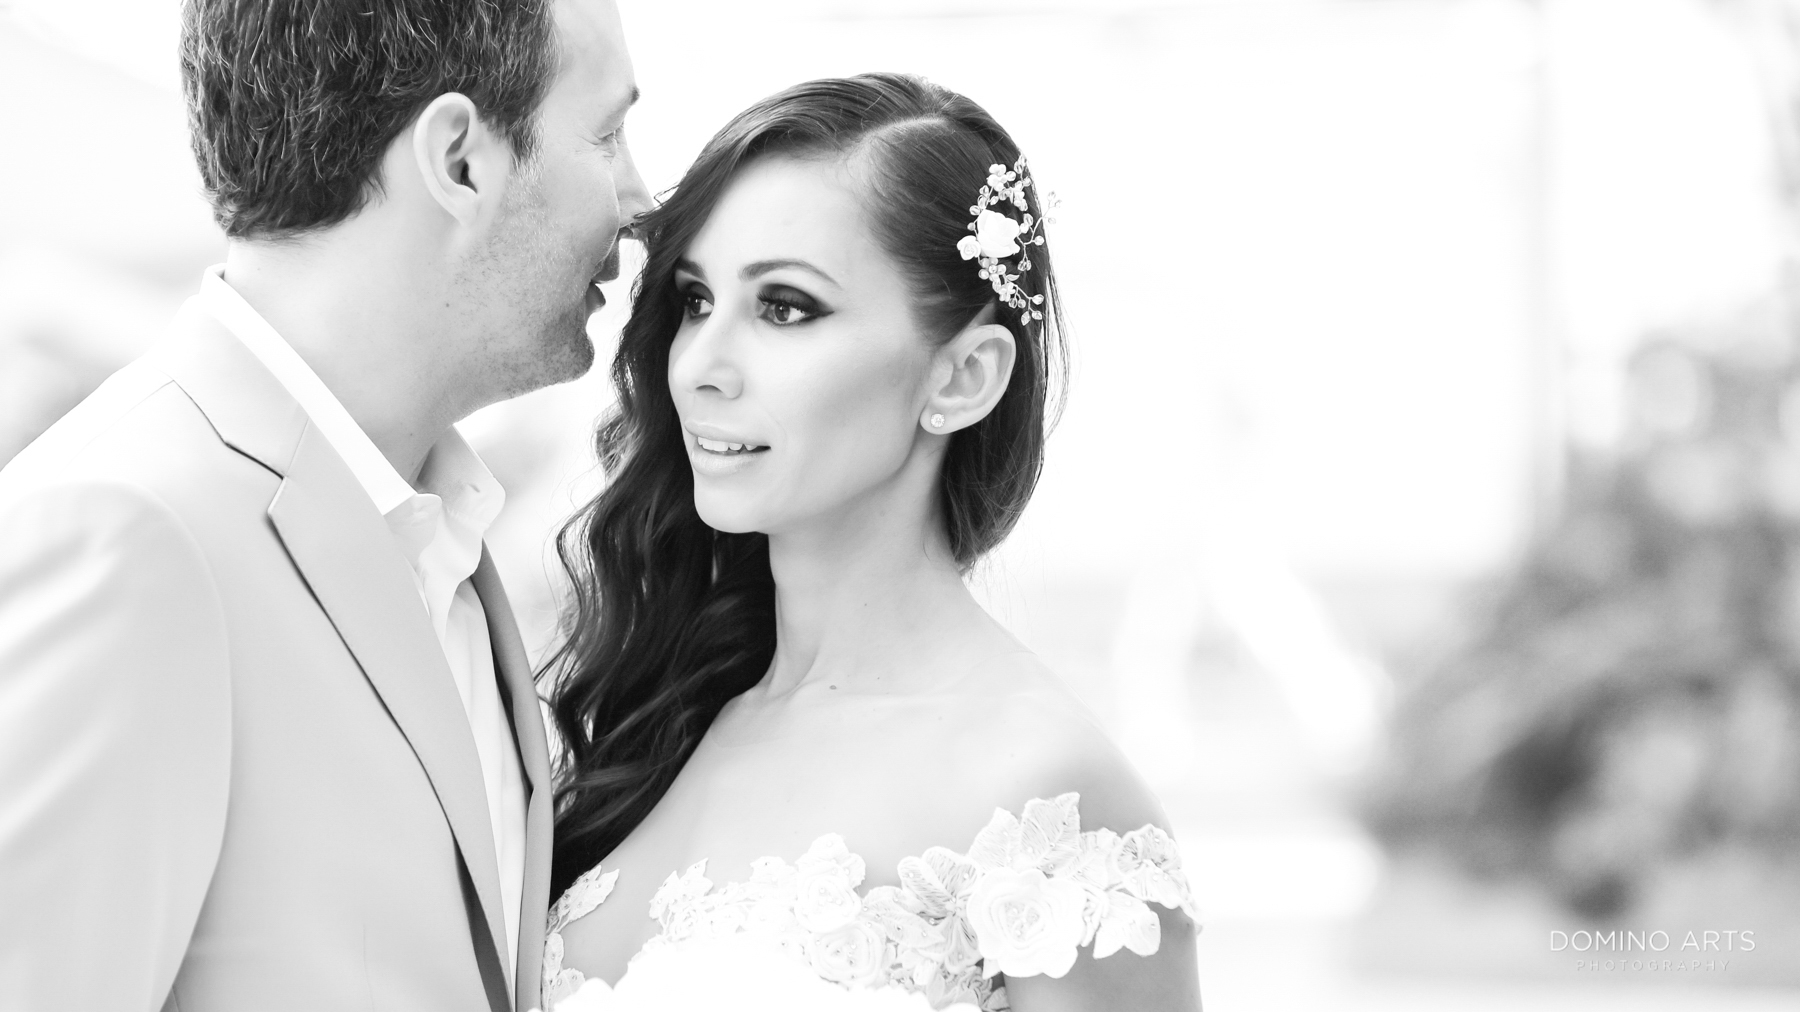 black and white wedding photography at Faena Hotel Miami